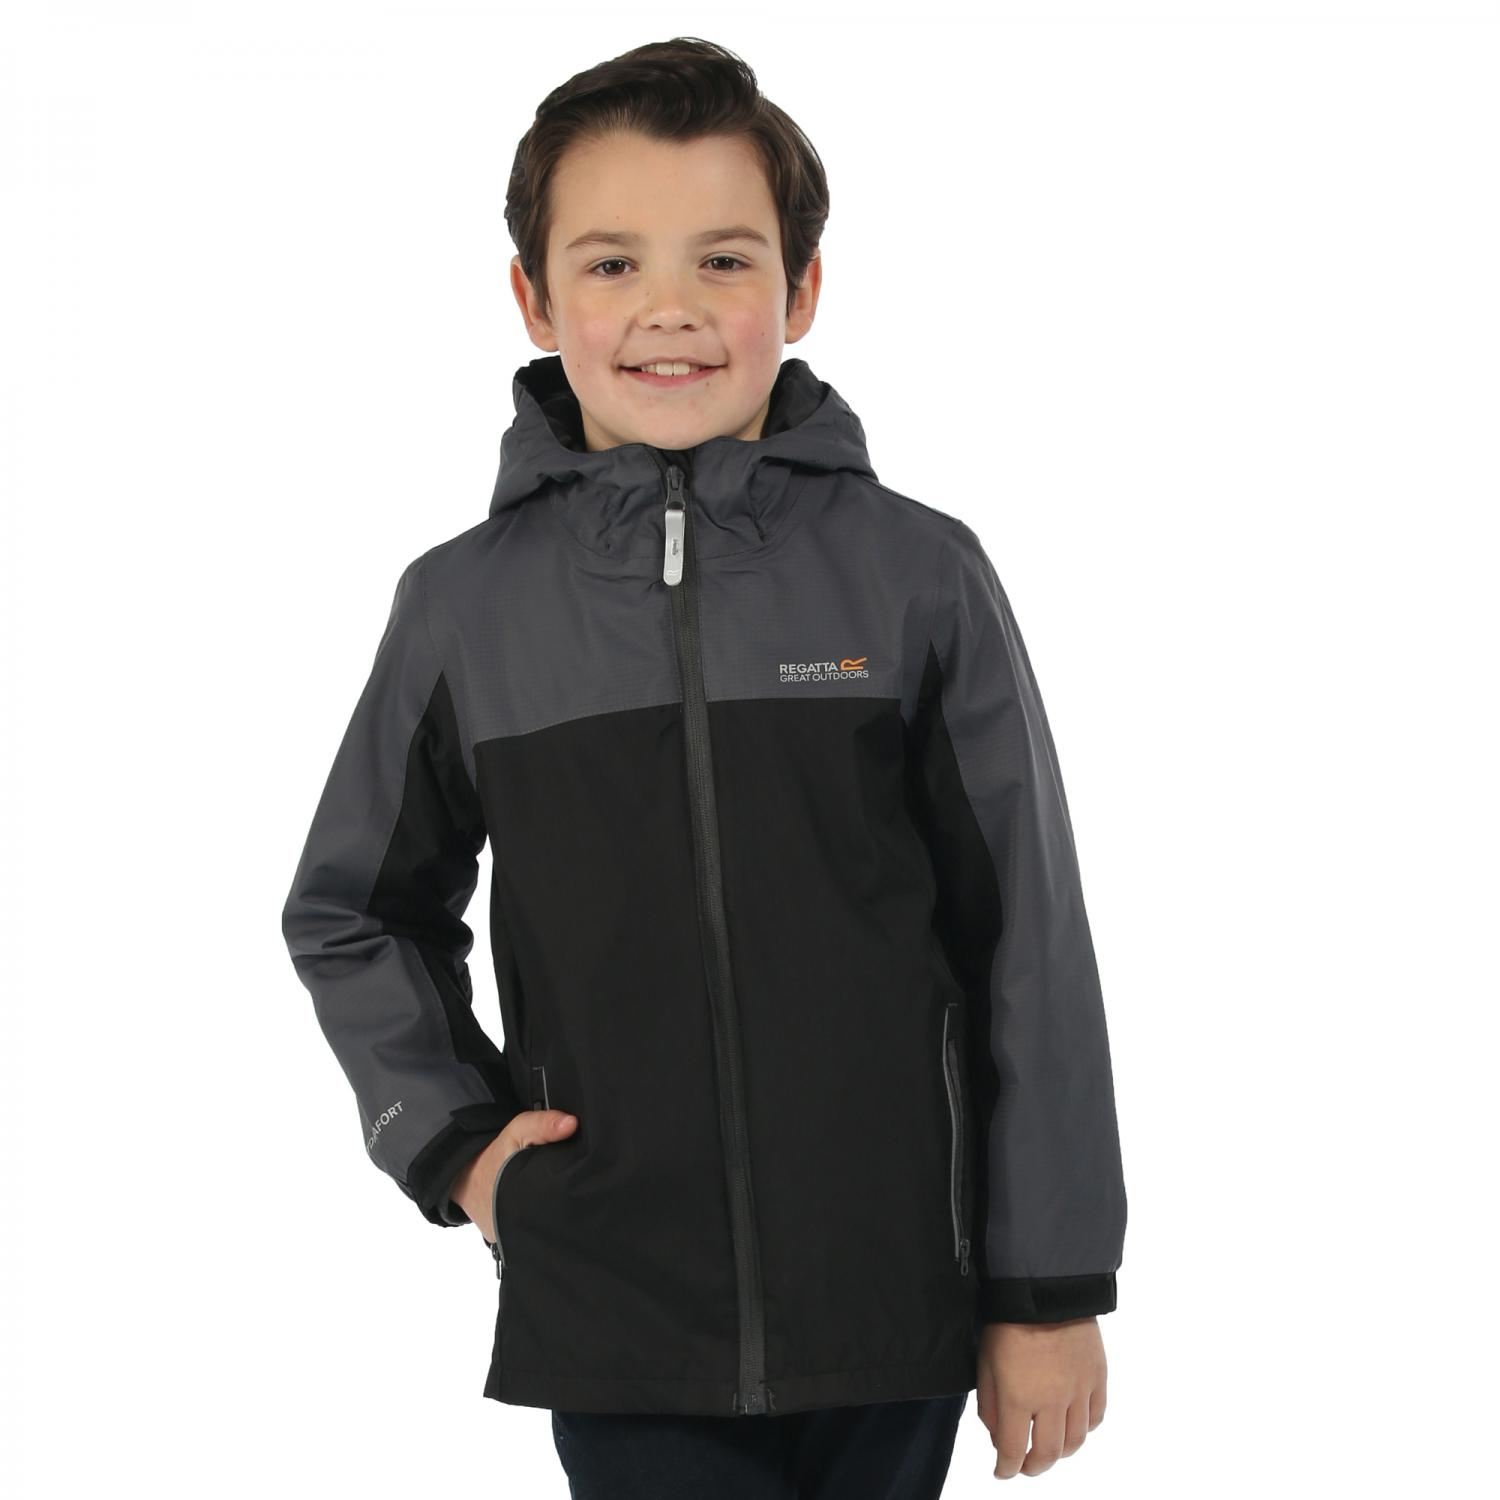 Luca III 3 in 1 Jacket Blk SlG(SlG)